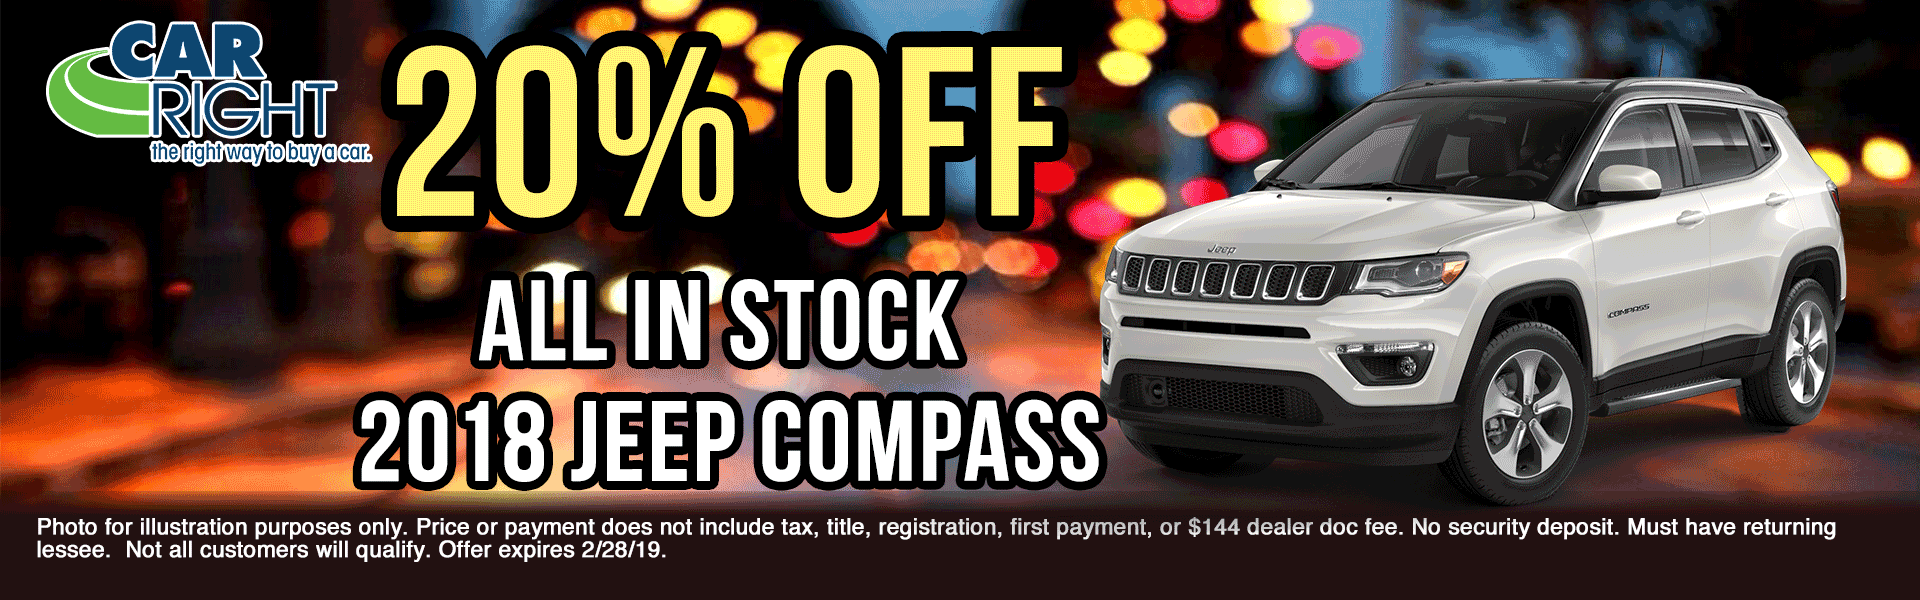 Jeep-Compass-20 presidents day sales event Ram truck month new vehicle specials ram specials carright specials carright Chrysler dodge jeep ram moon township Chrysler specials jeep specials dodge specials truck specials lease specials